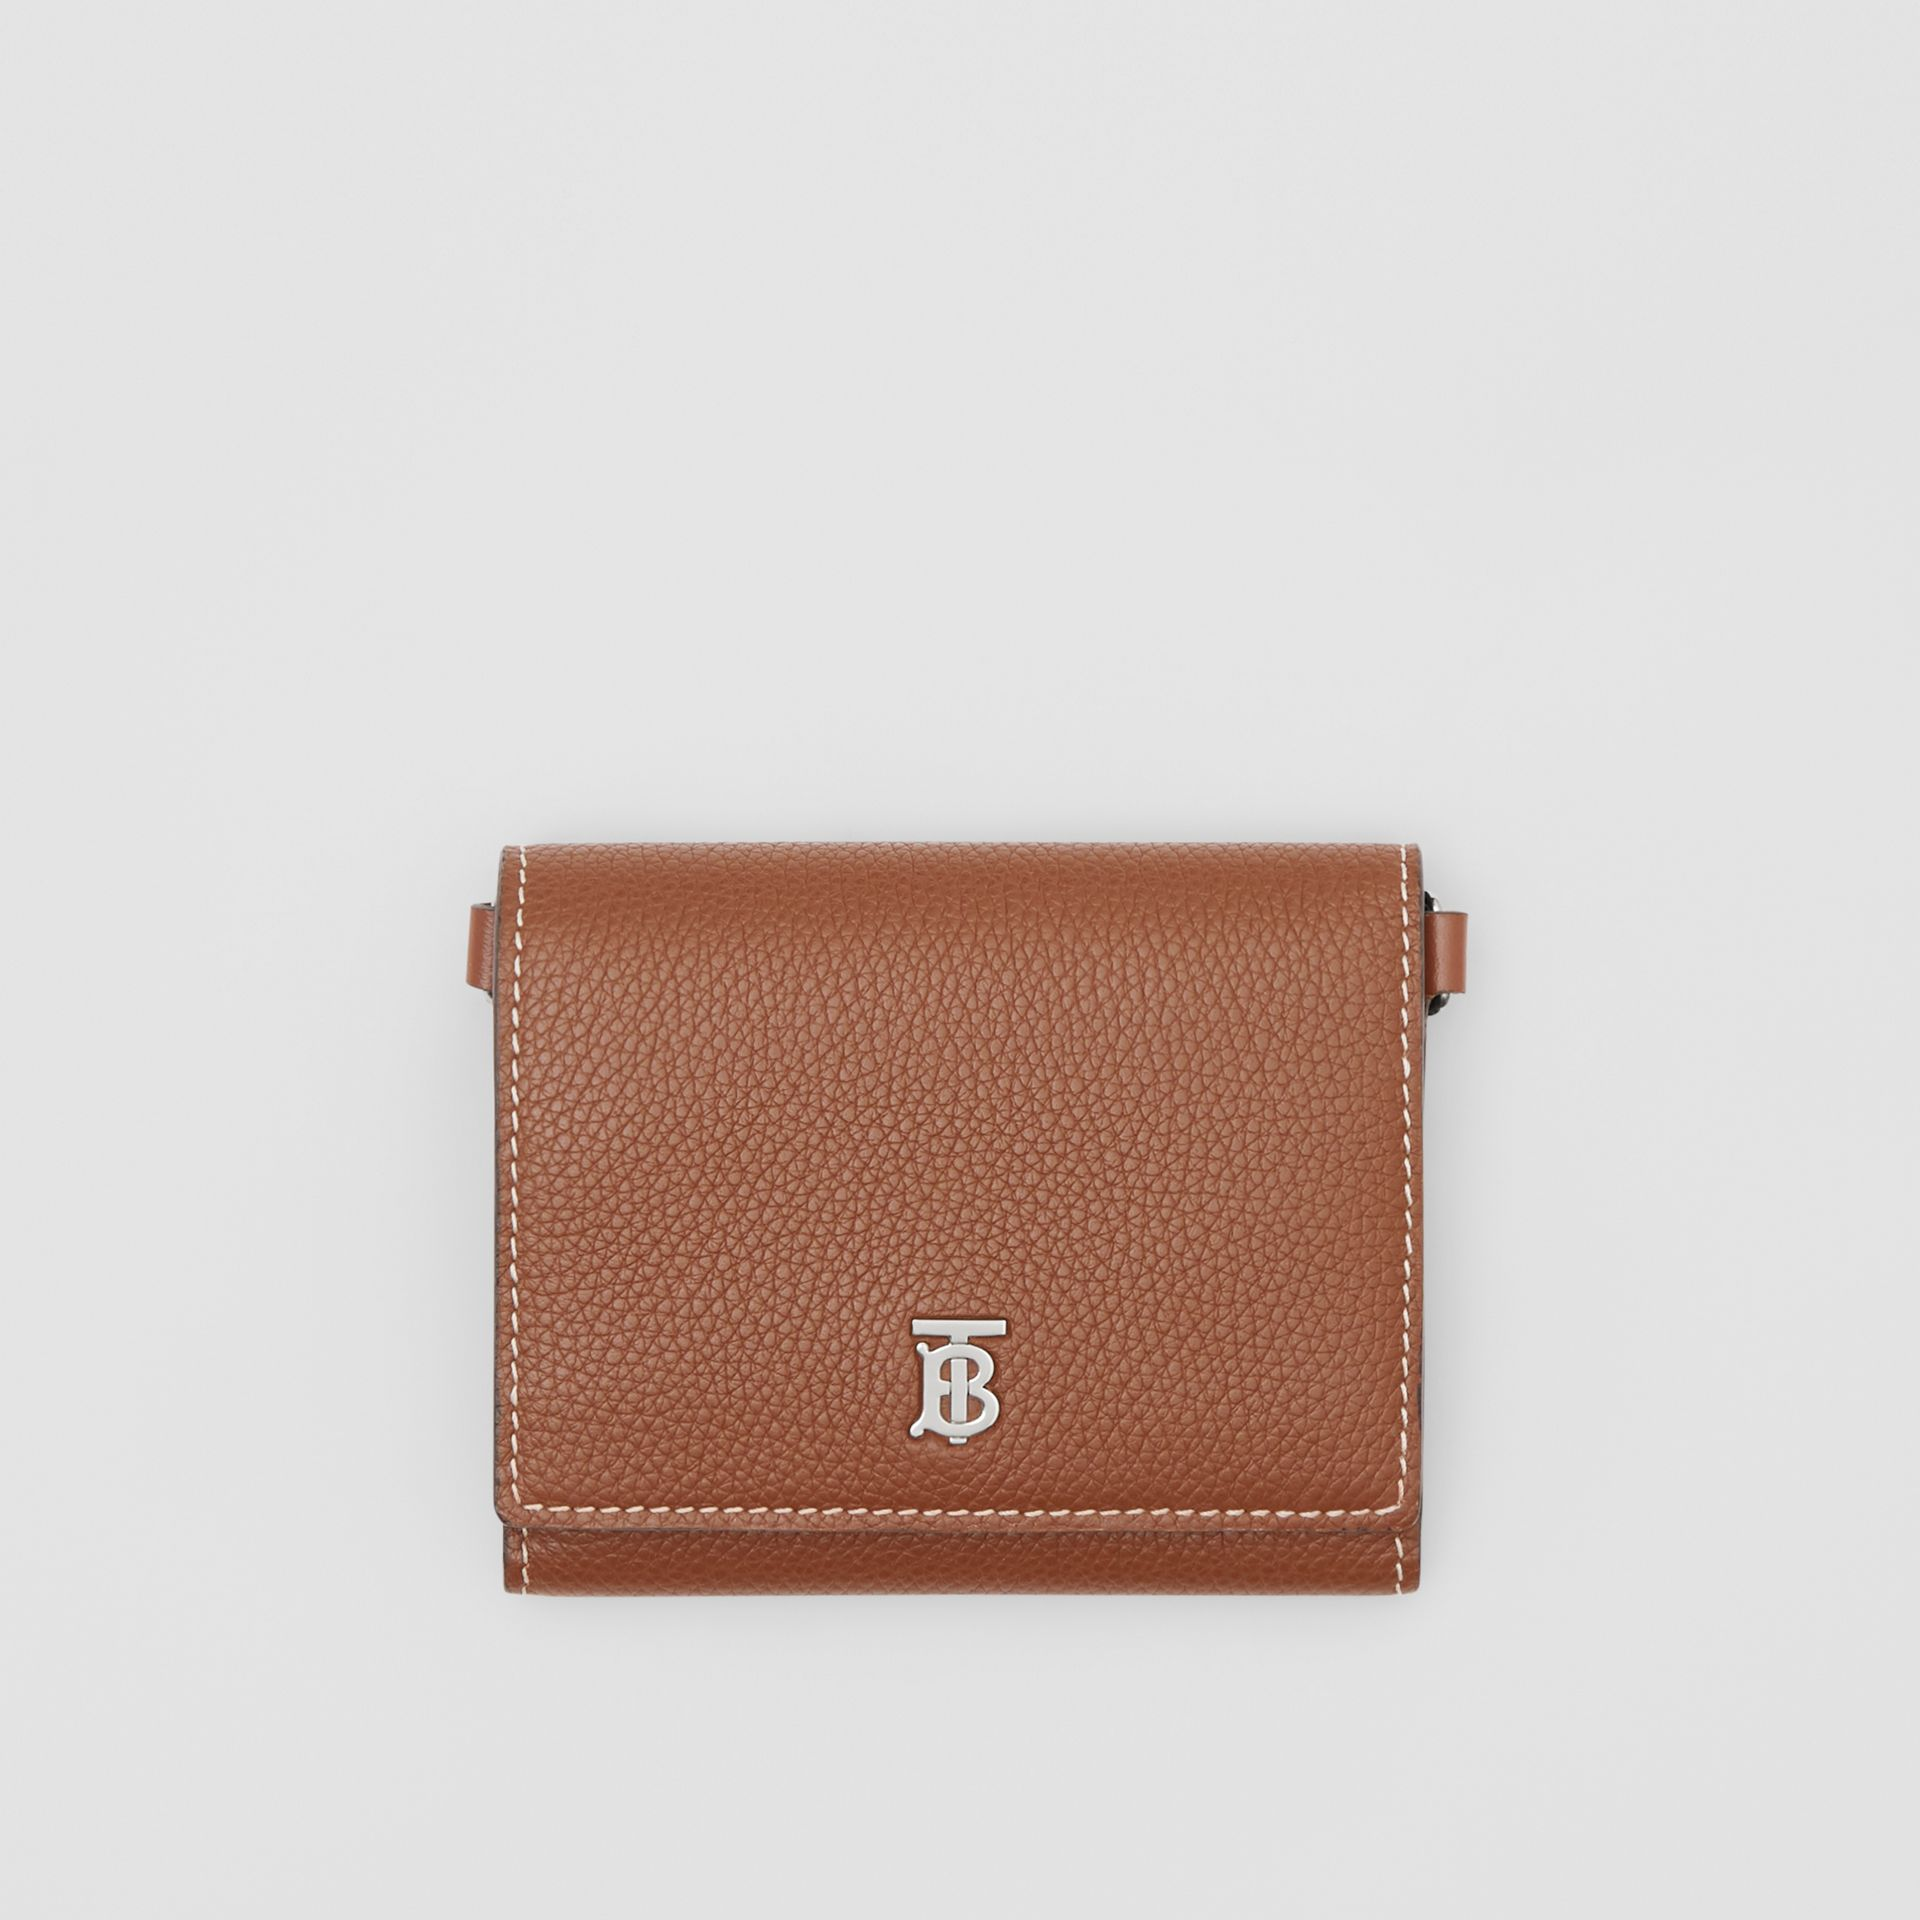 Small Grainy Leather Wallet with Detachable Strap in Tan | Burberry - gallery image 10